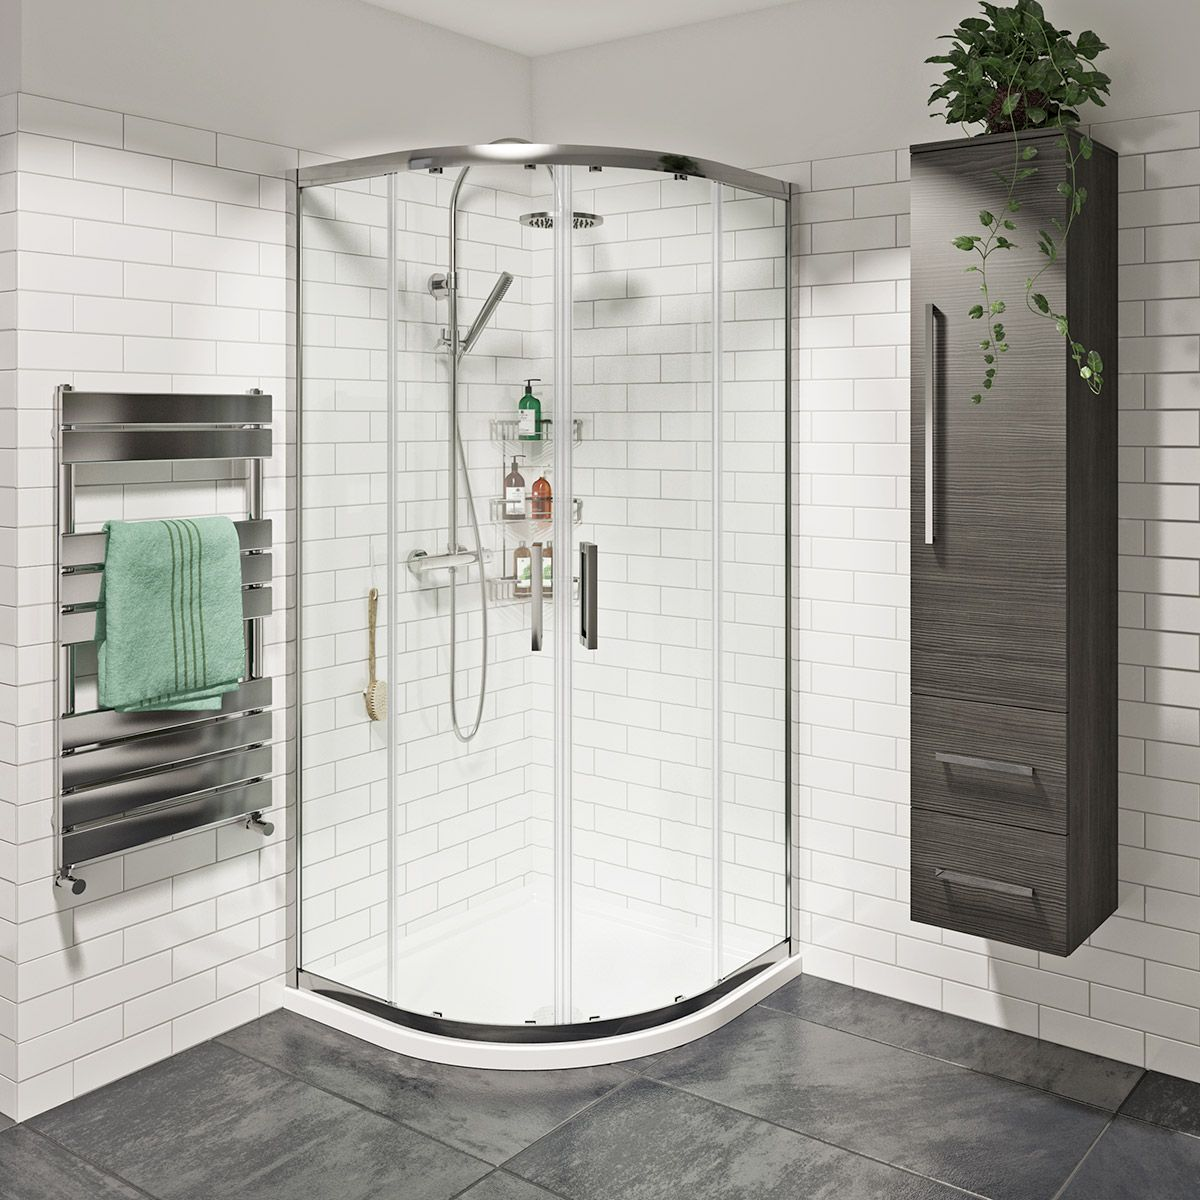 Mode Tate 8mm easy clean sliding quadrant shower enclosure ...